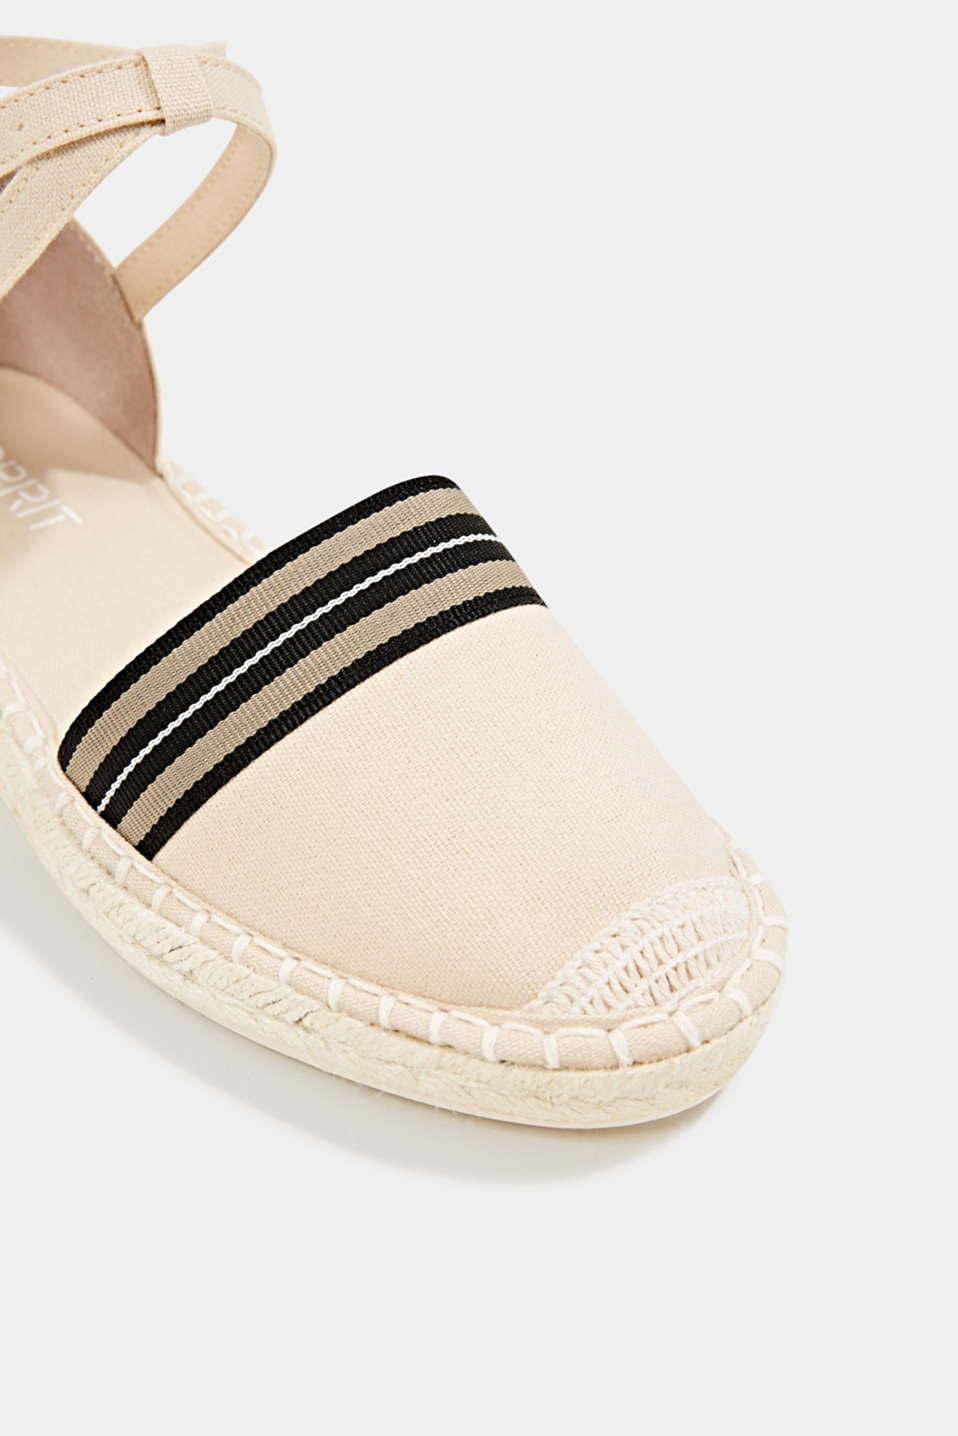 Espadrilles with an ankle strap, CREAM BEIGE, detail image number 4